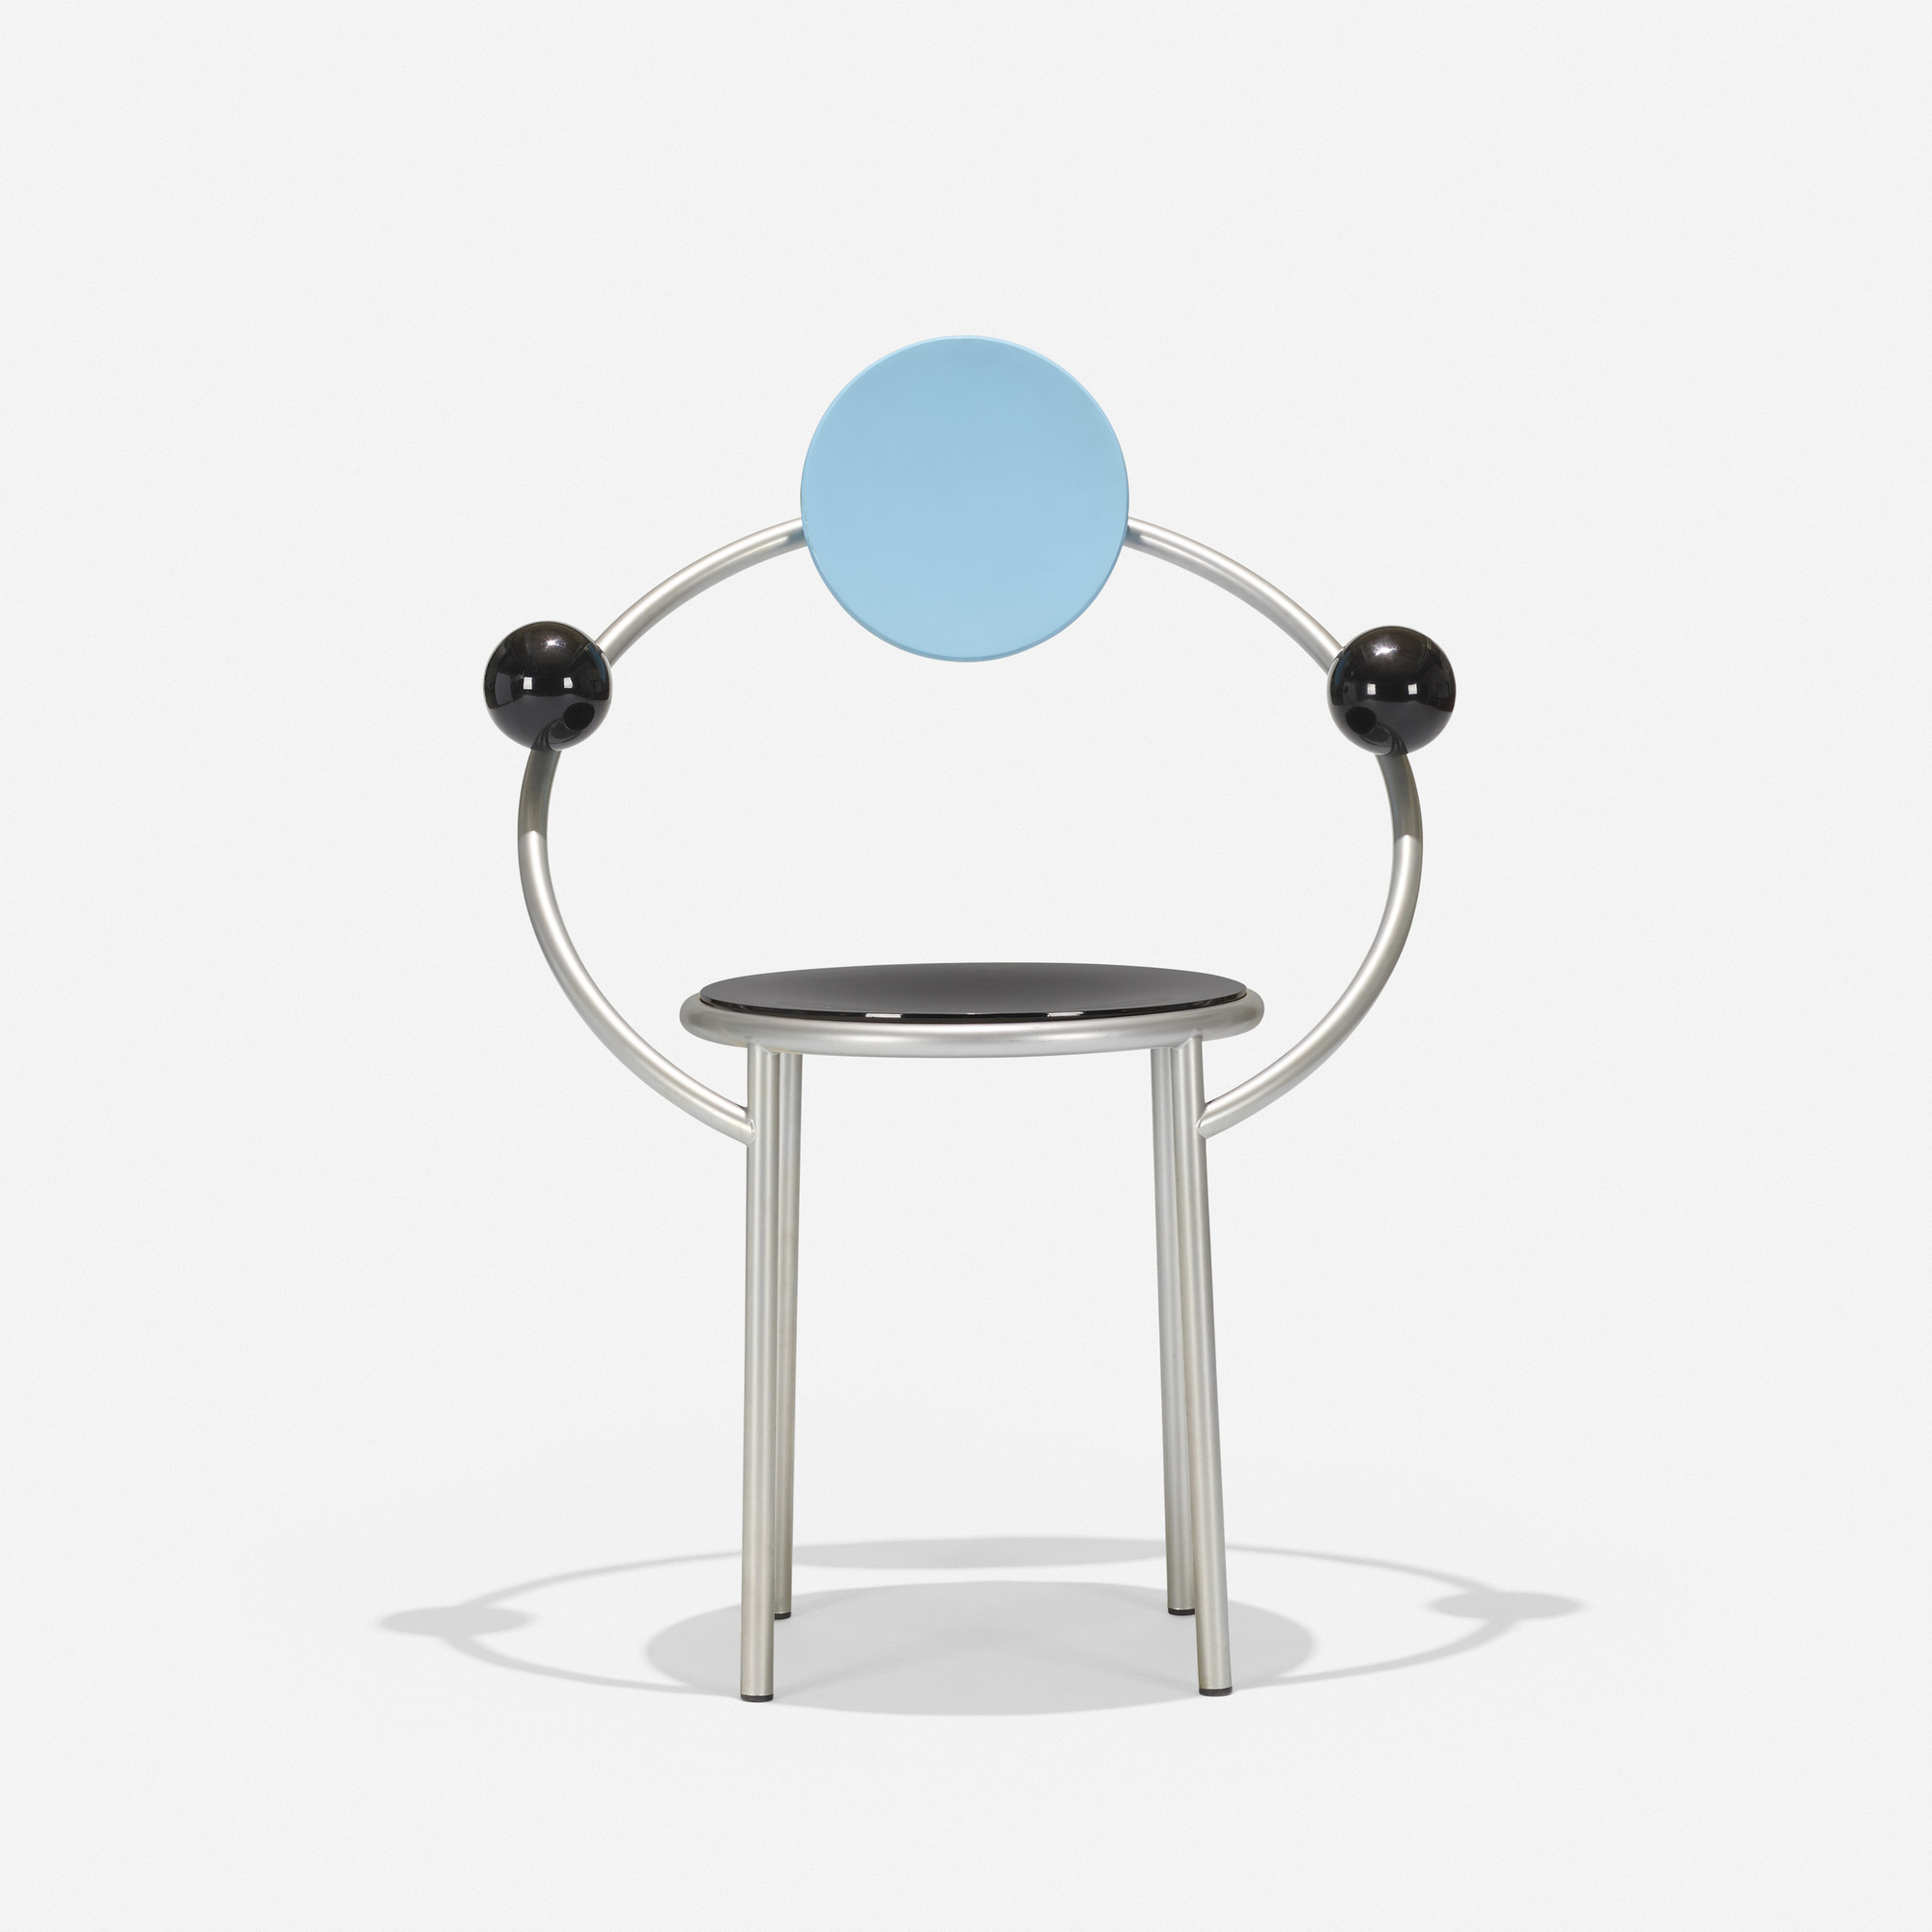 186: Michele De Lucchi / First Chair (1 of 3)